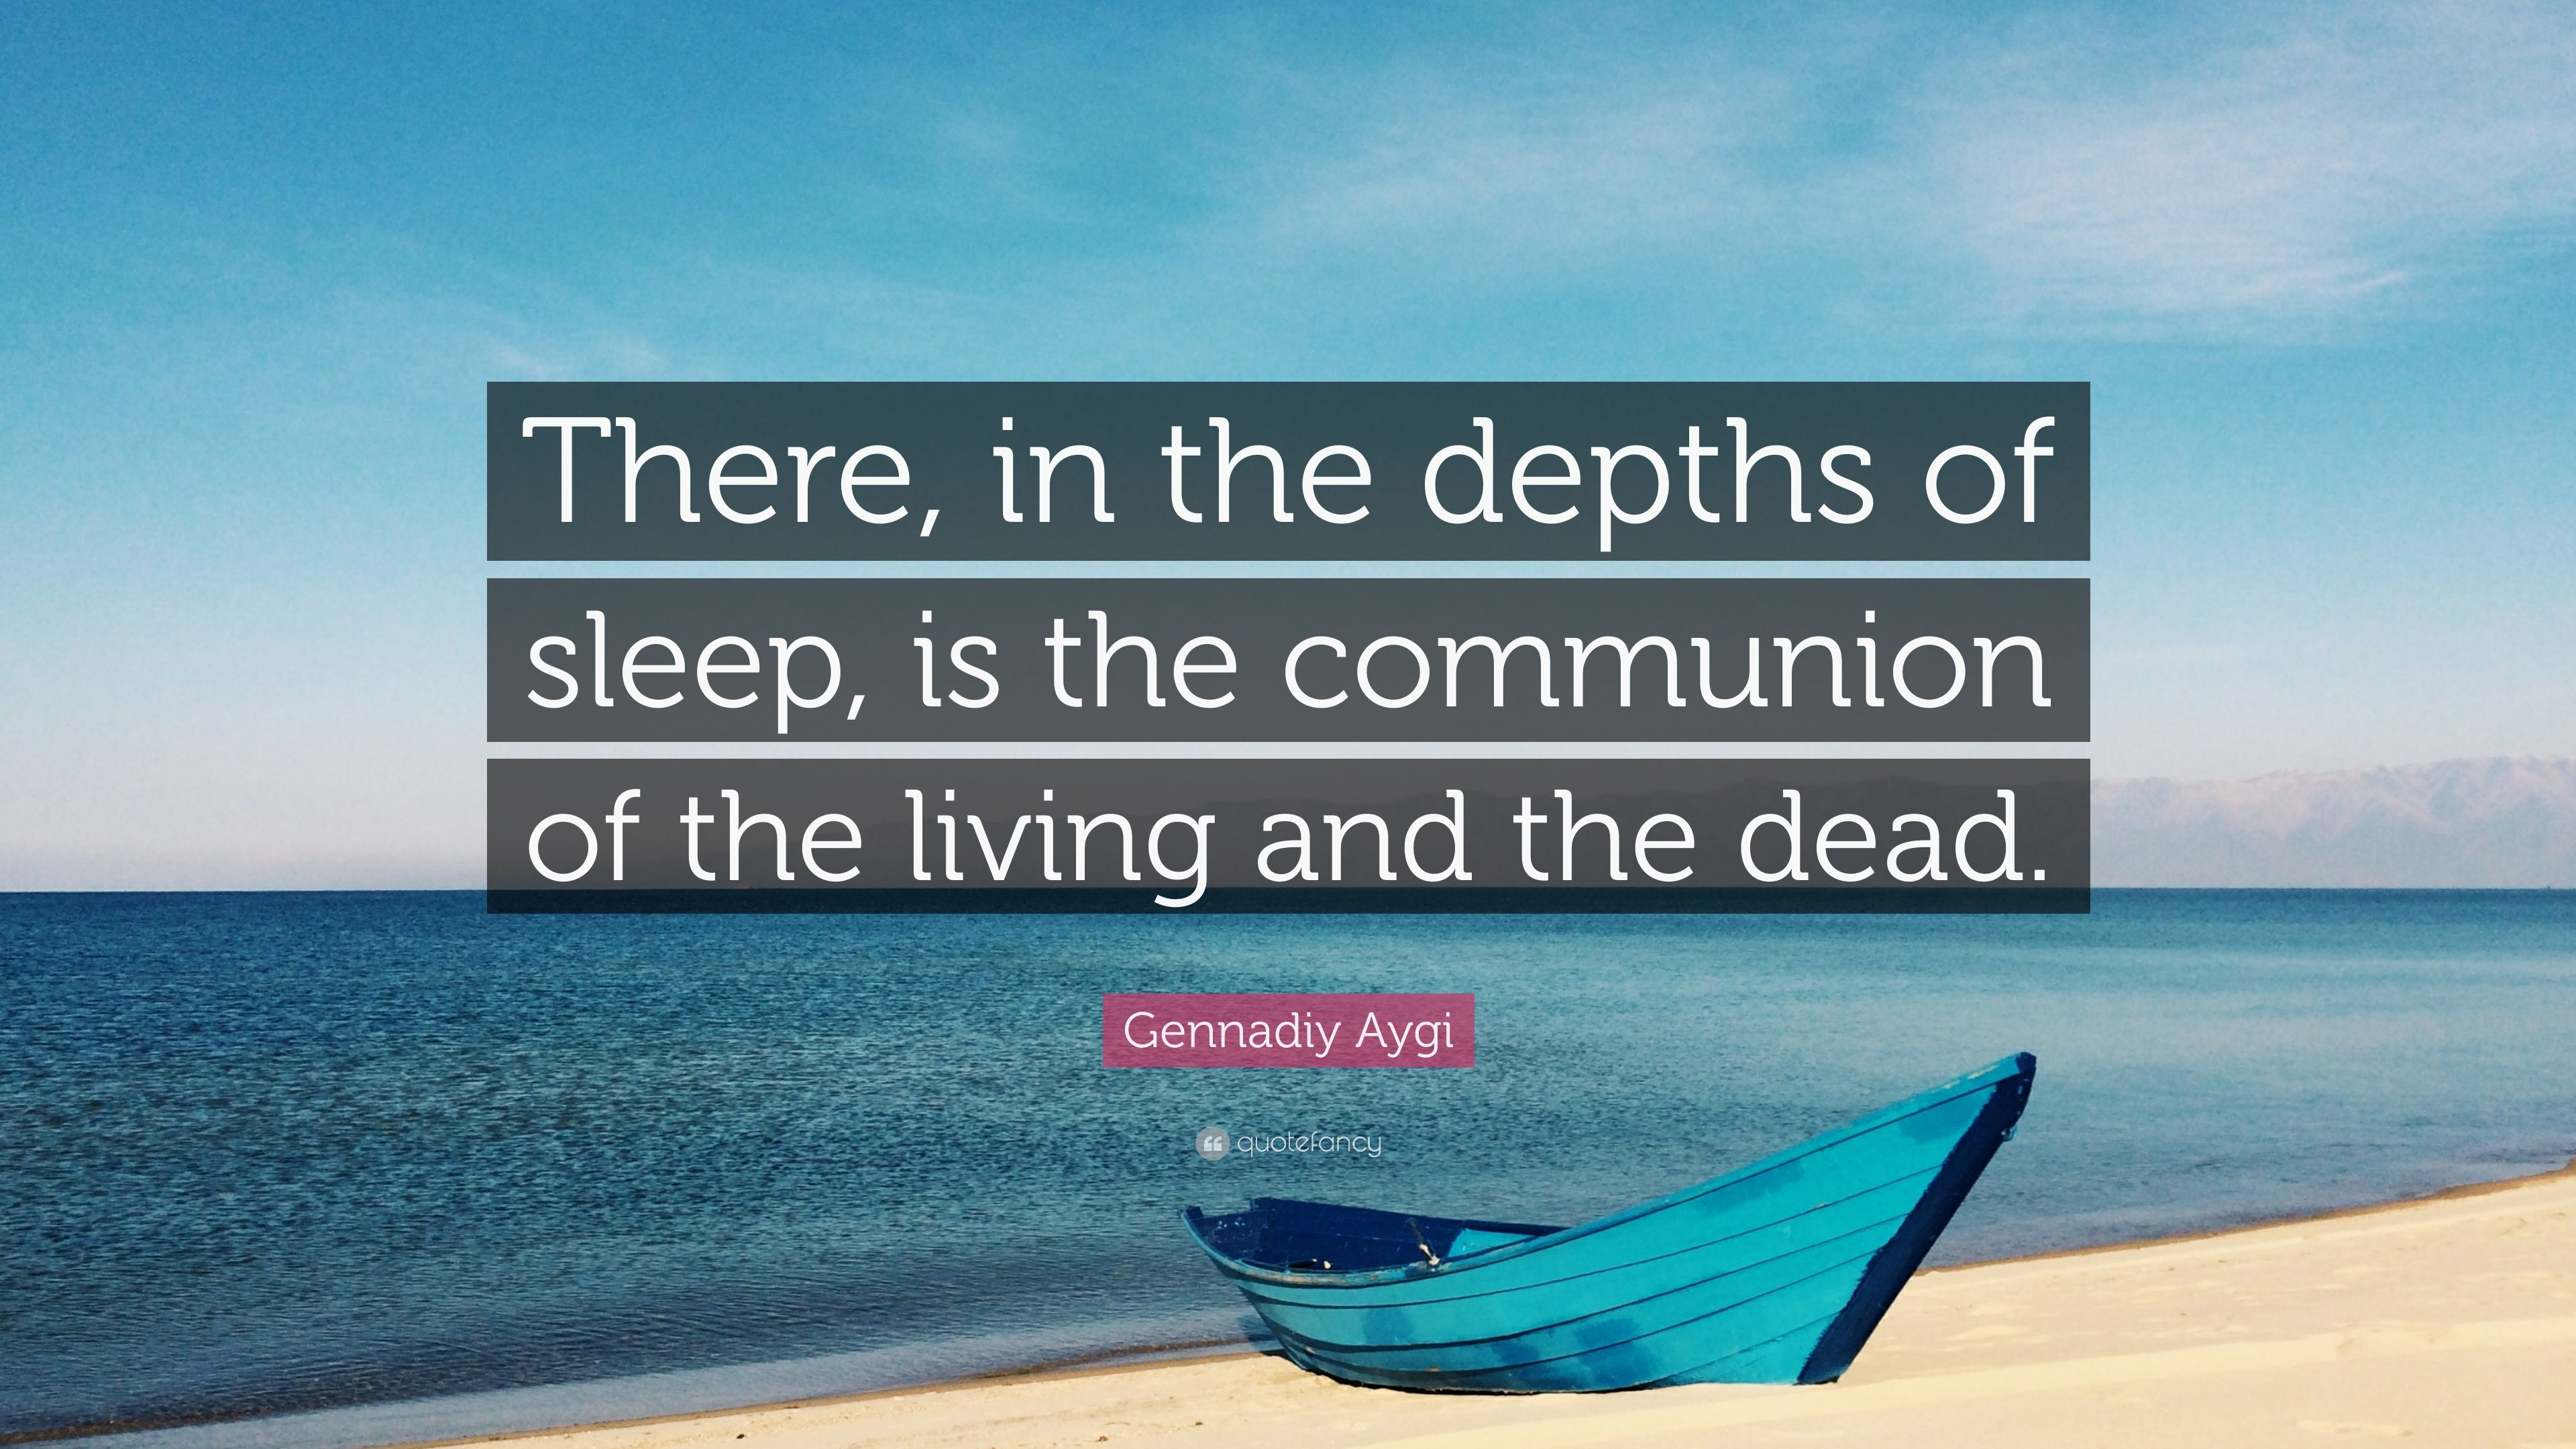 gennadiy aygi quote there in the depths of sleep is the